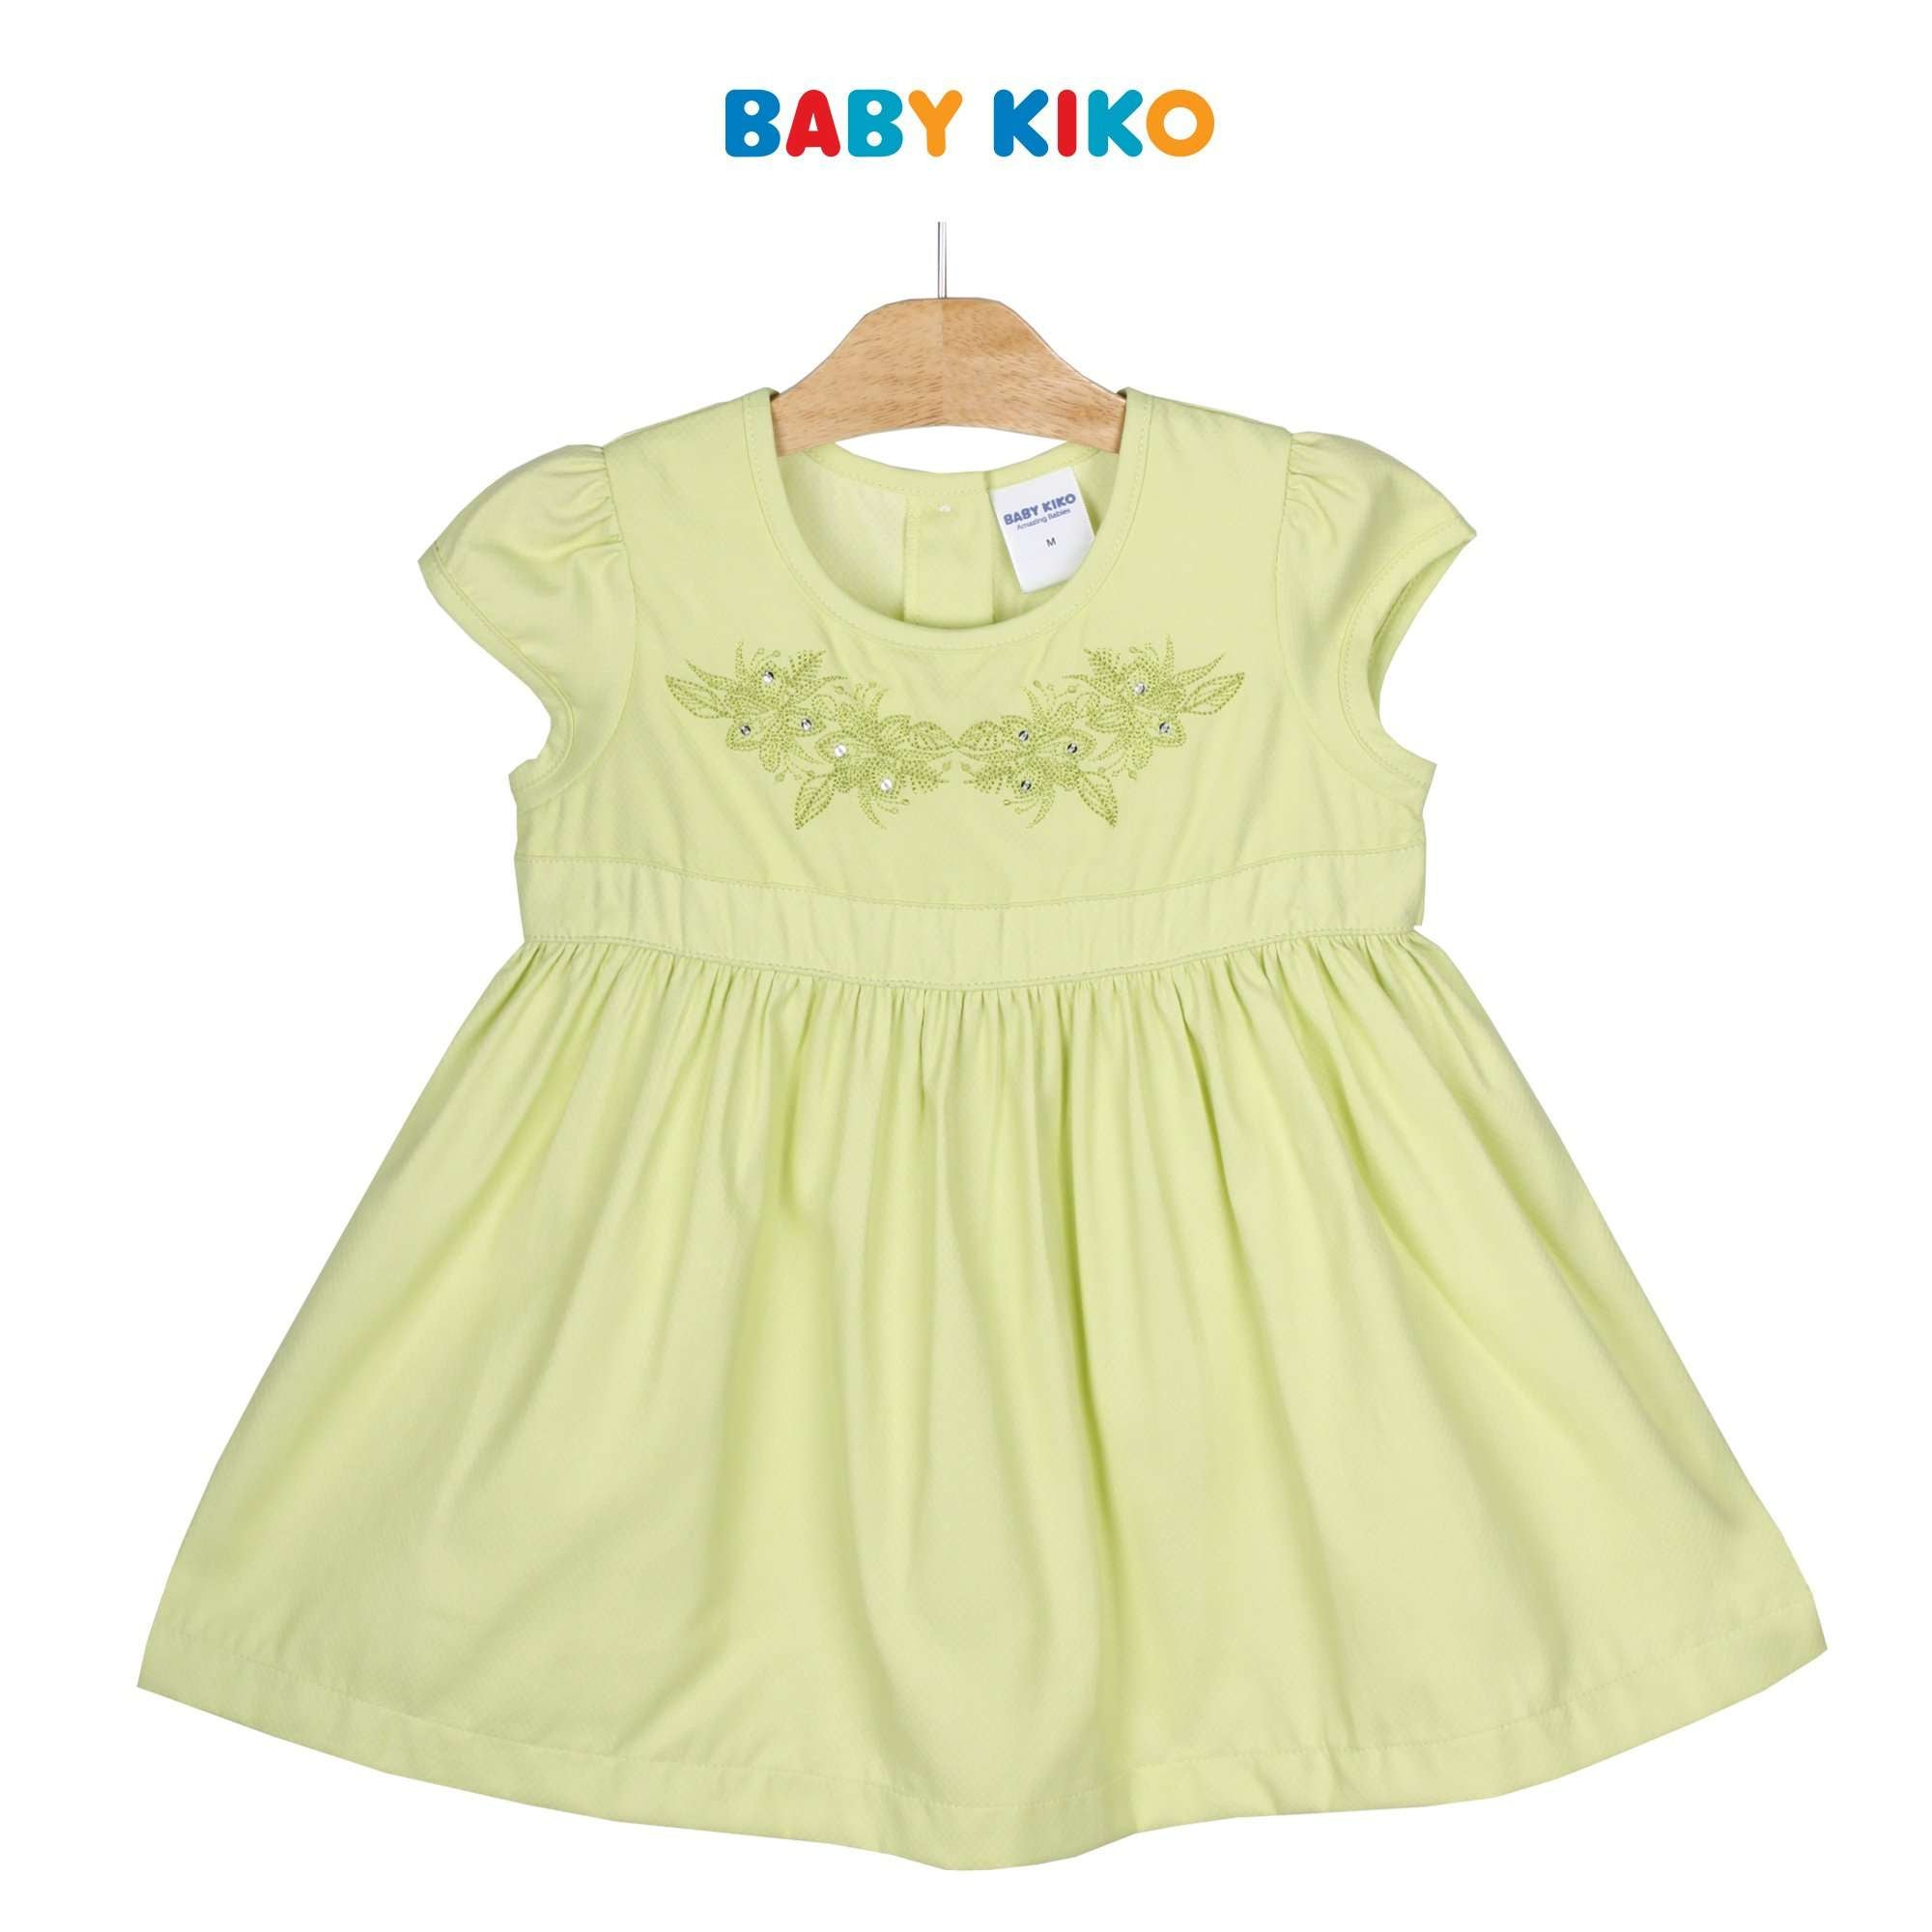 Baby KIKO Toddler Girl Short Sleeve Dress - Green 315139-312 : Buy Baby KIKO online at CMG.MY